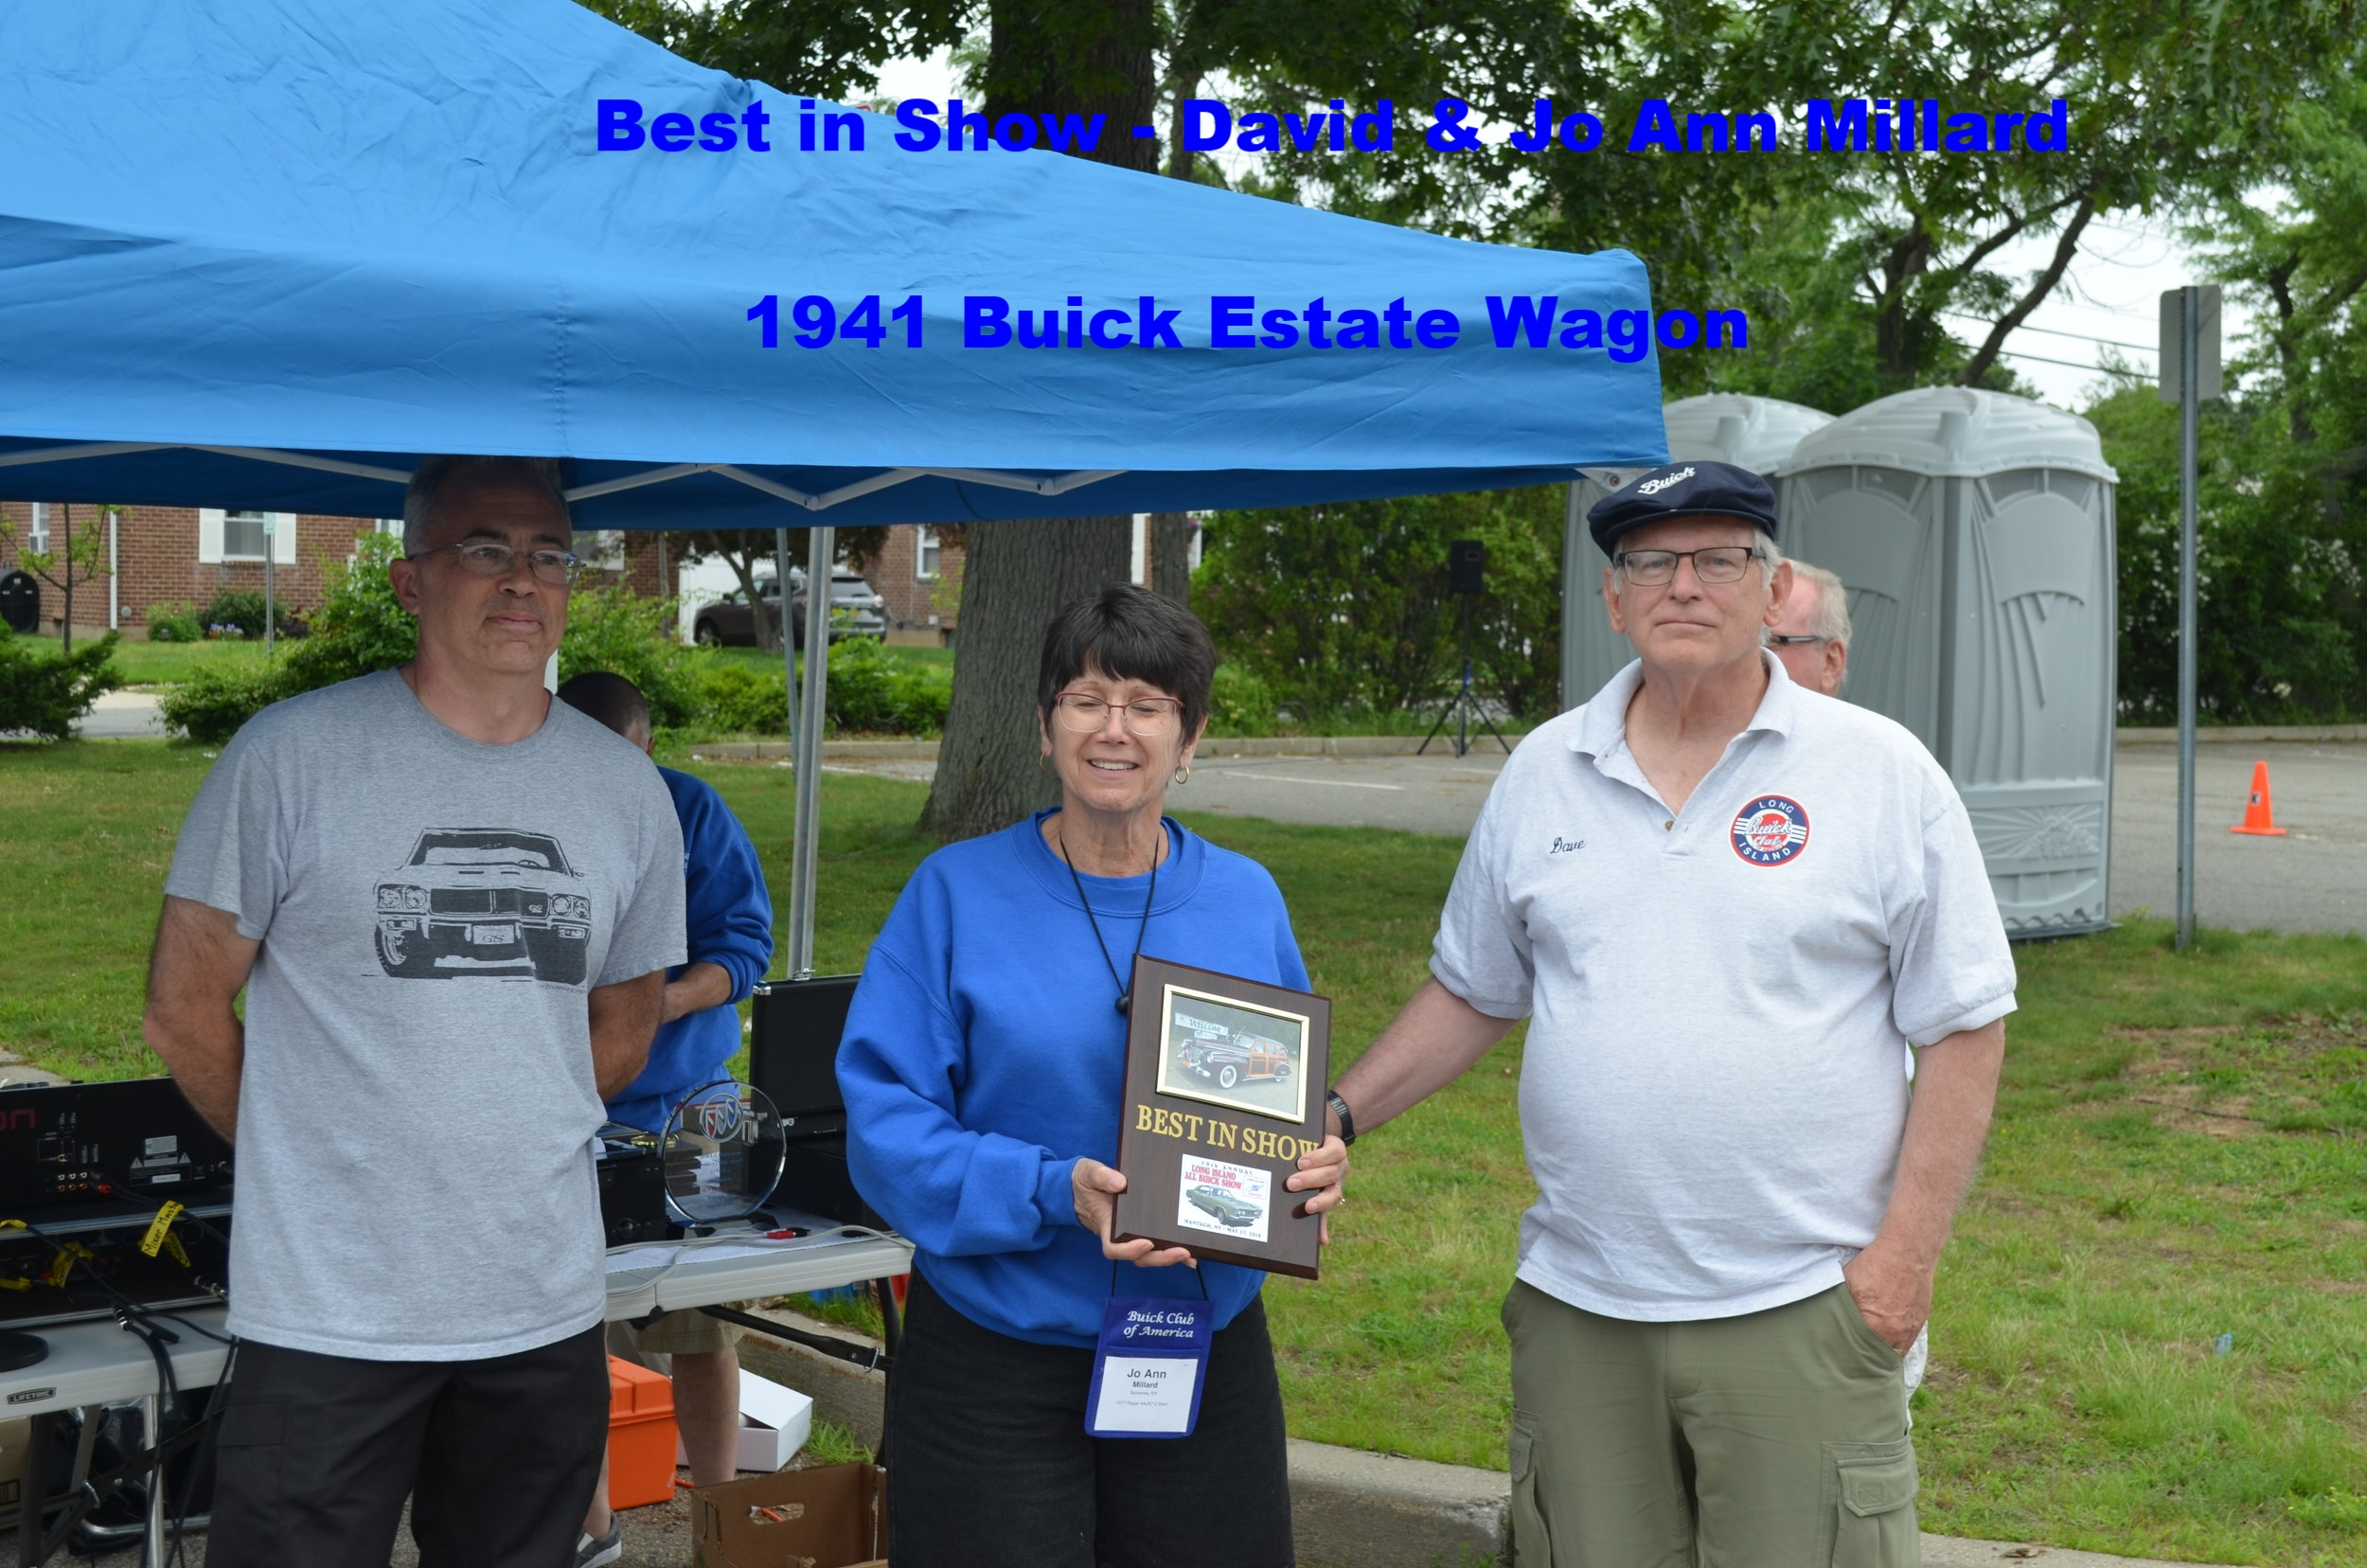 Best in Show - David and Jo An Millard - 1941 Buick Estate Wagon